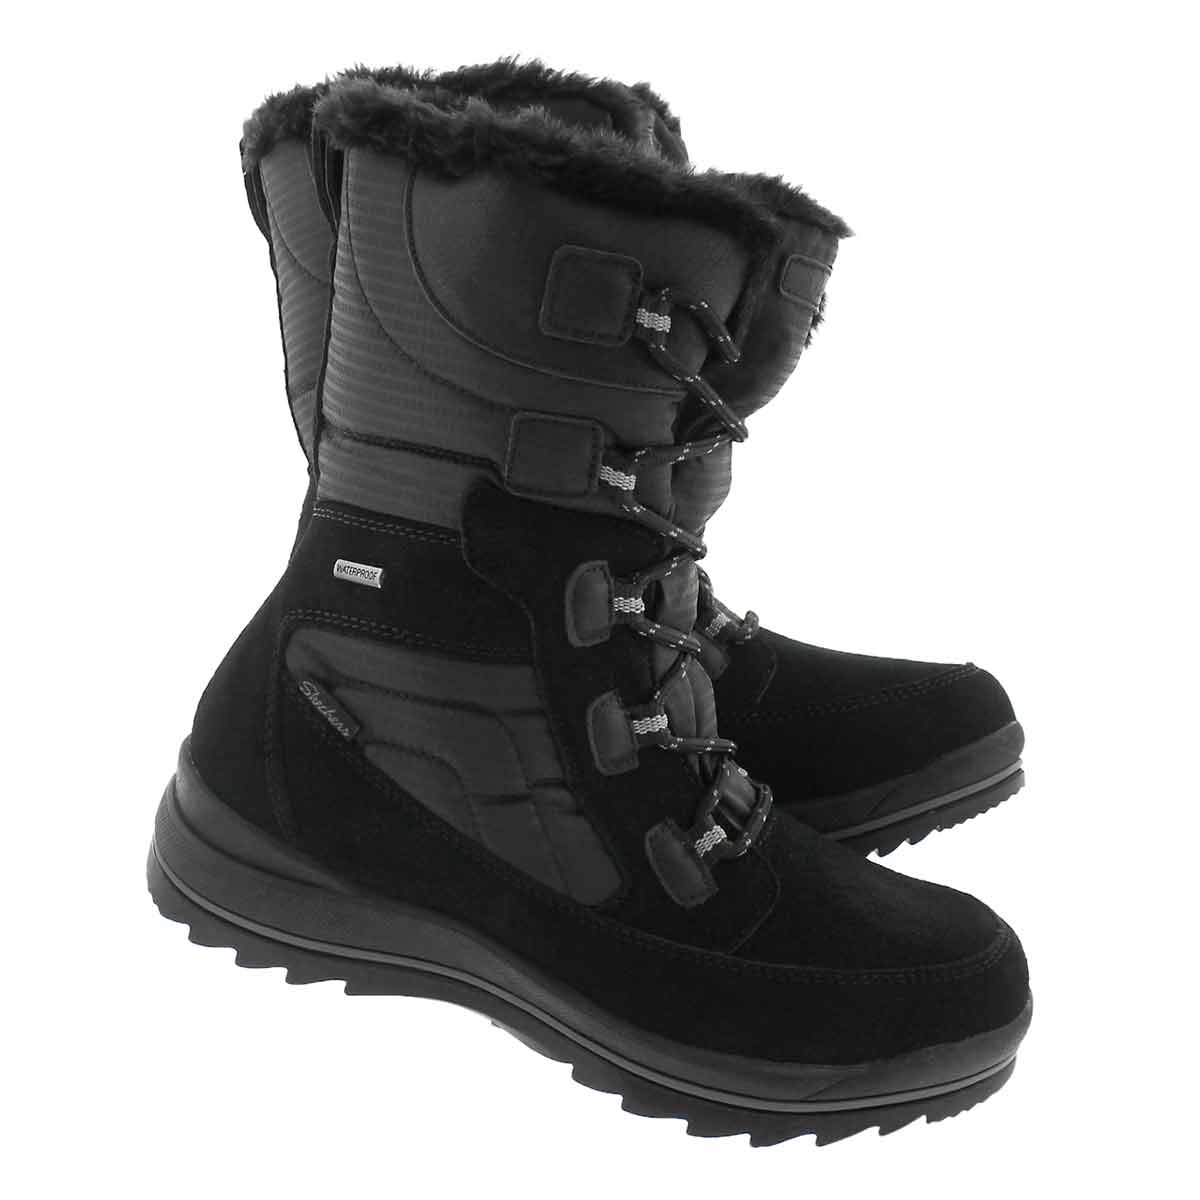 Lds Colorado blk wtpf tall winter boot